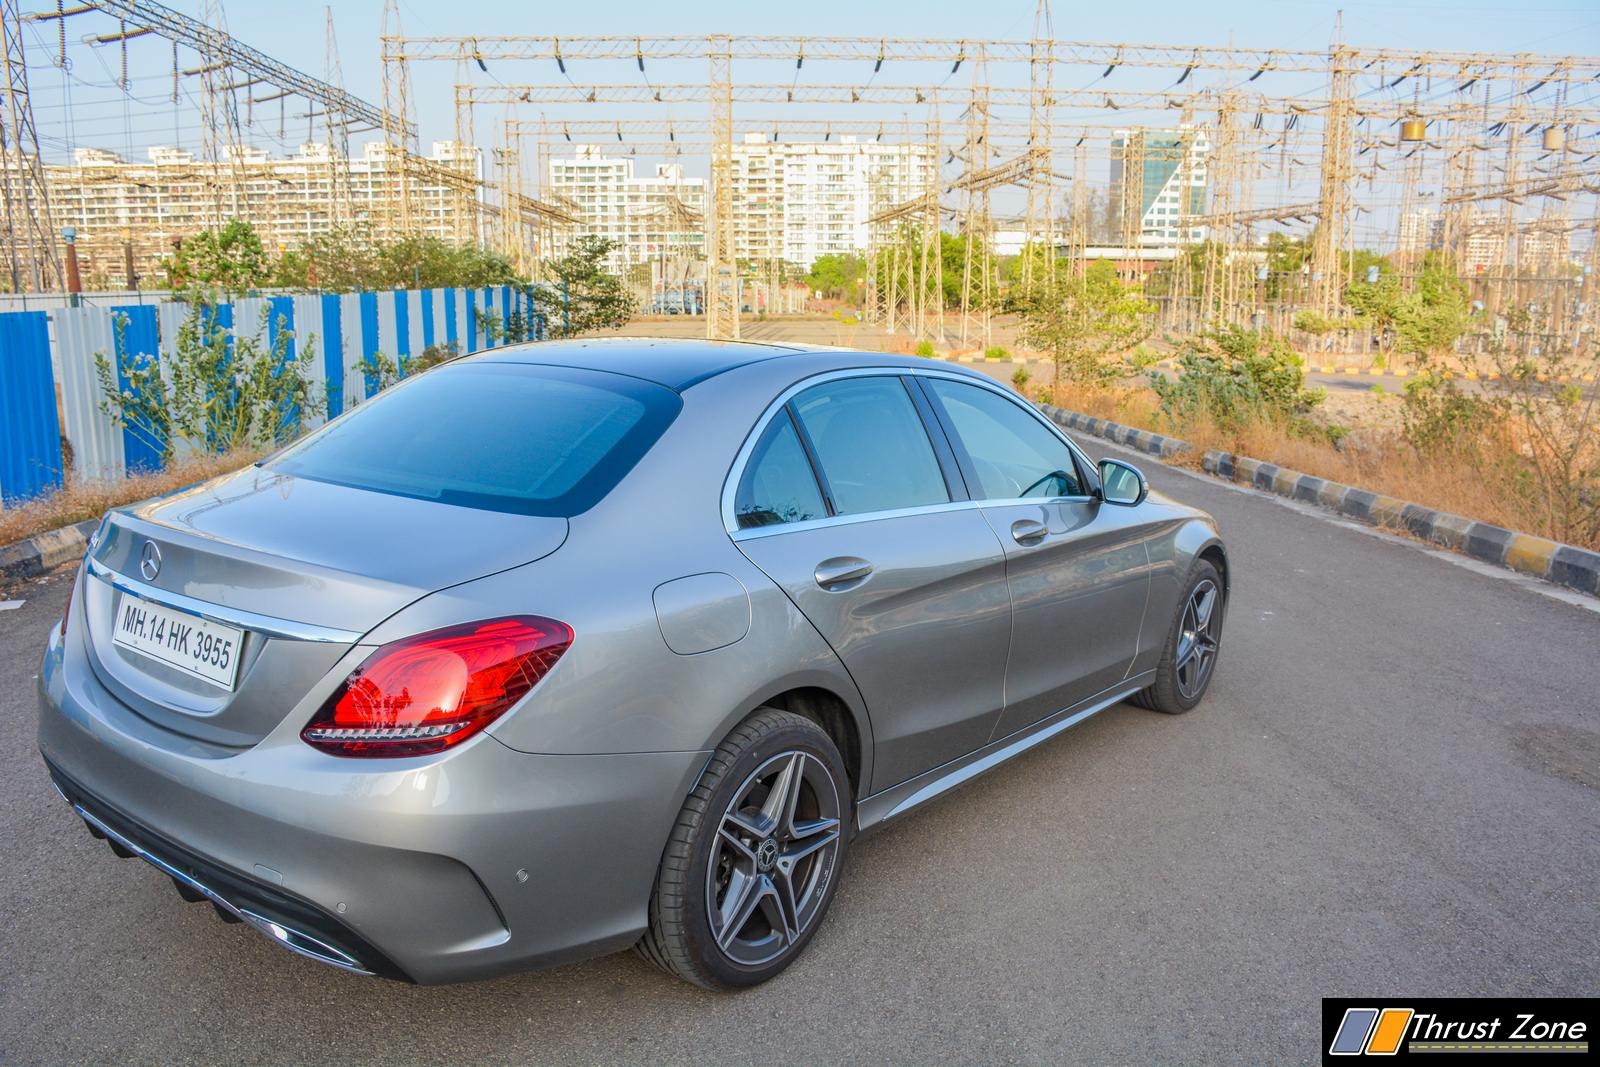 https://www.thrustzone.com/wp-content/uploads/2019/05/2019-Mercedes-C300d-Diesel-India-Review-19.jpg